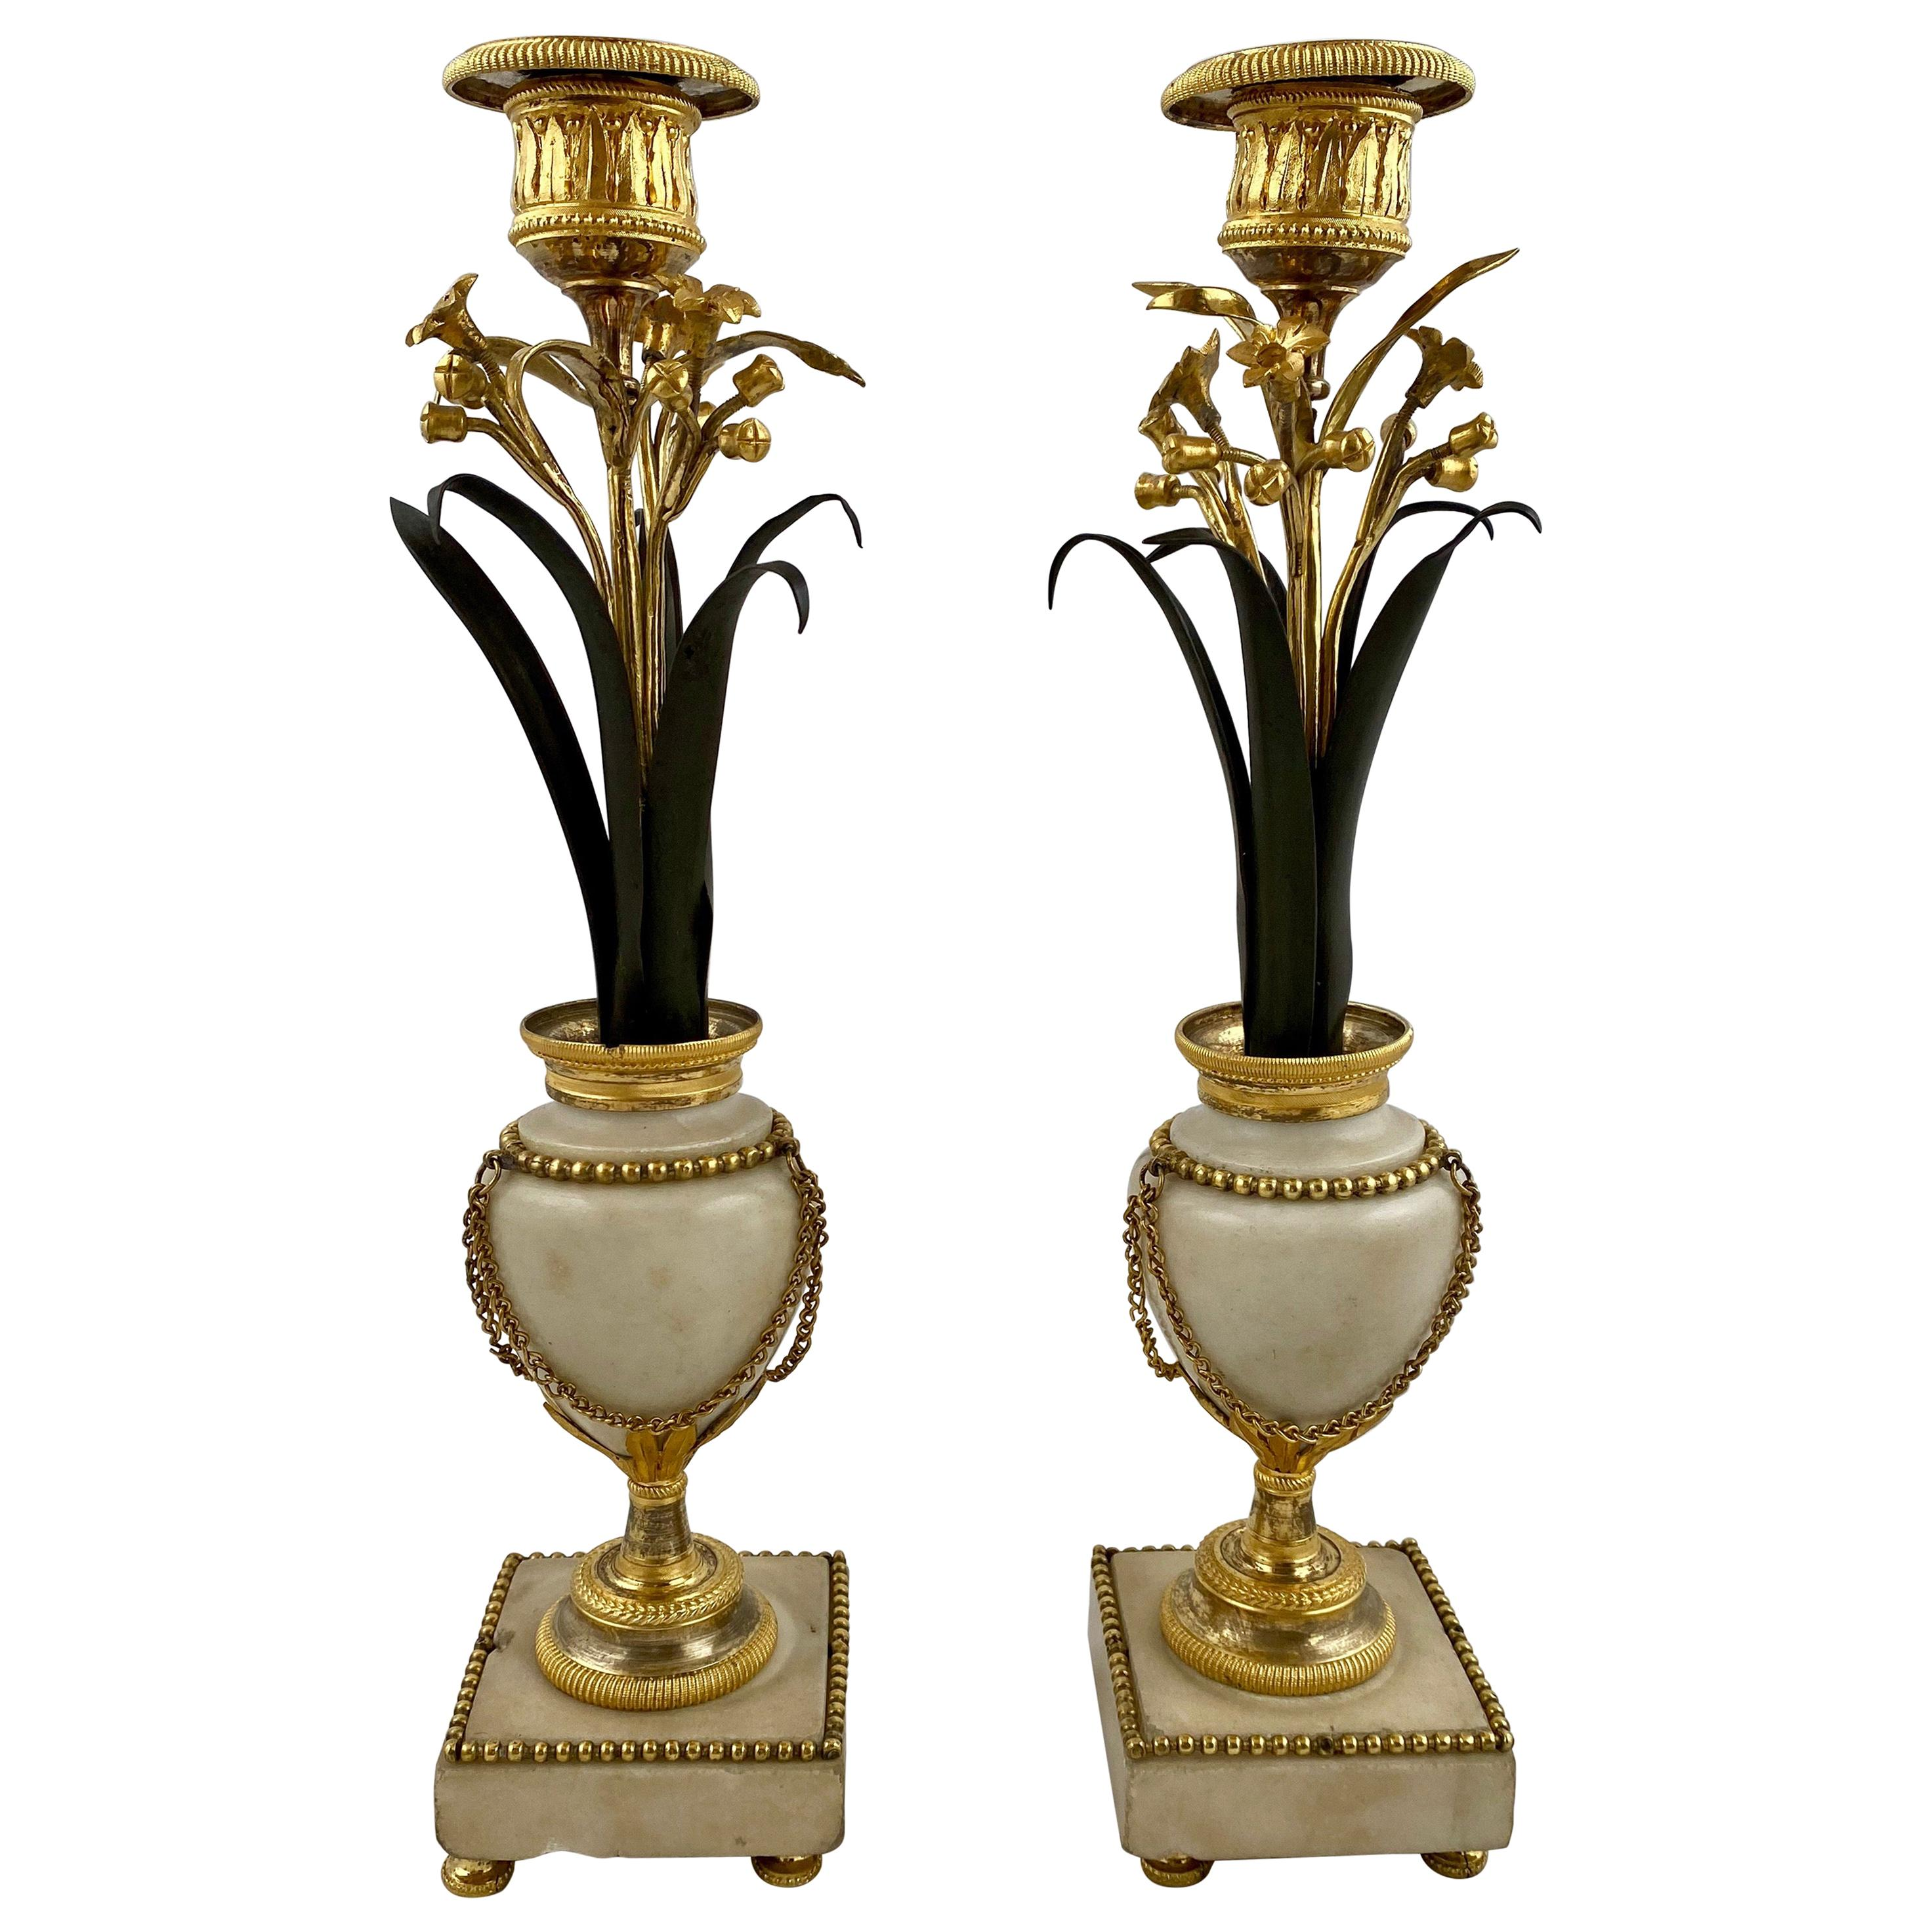 Pair of Candlesticks, Late 18th Century